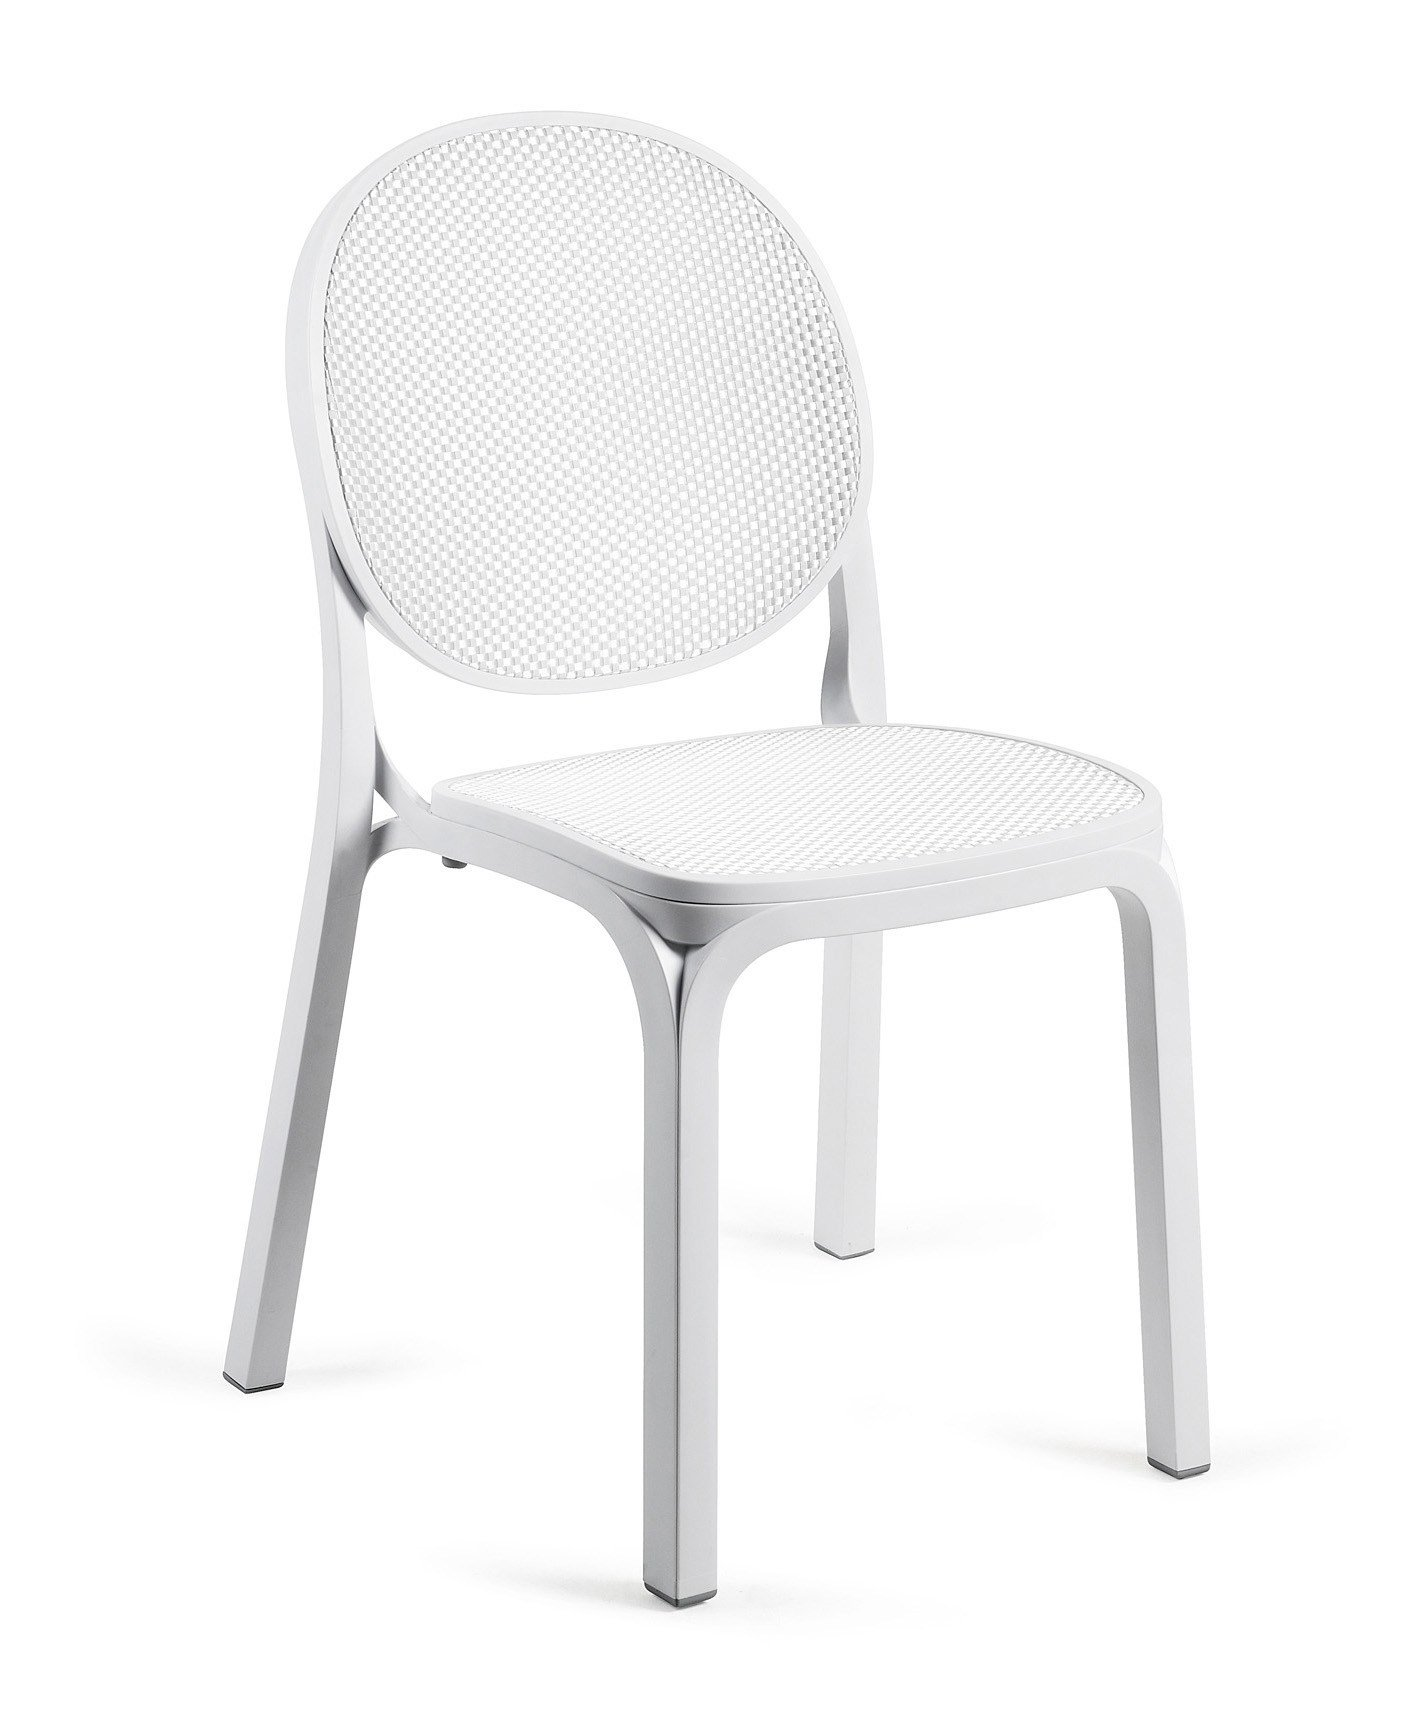 Chaise de jardin empilable fresia by nardi design for Chaises empilables